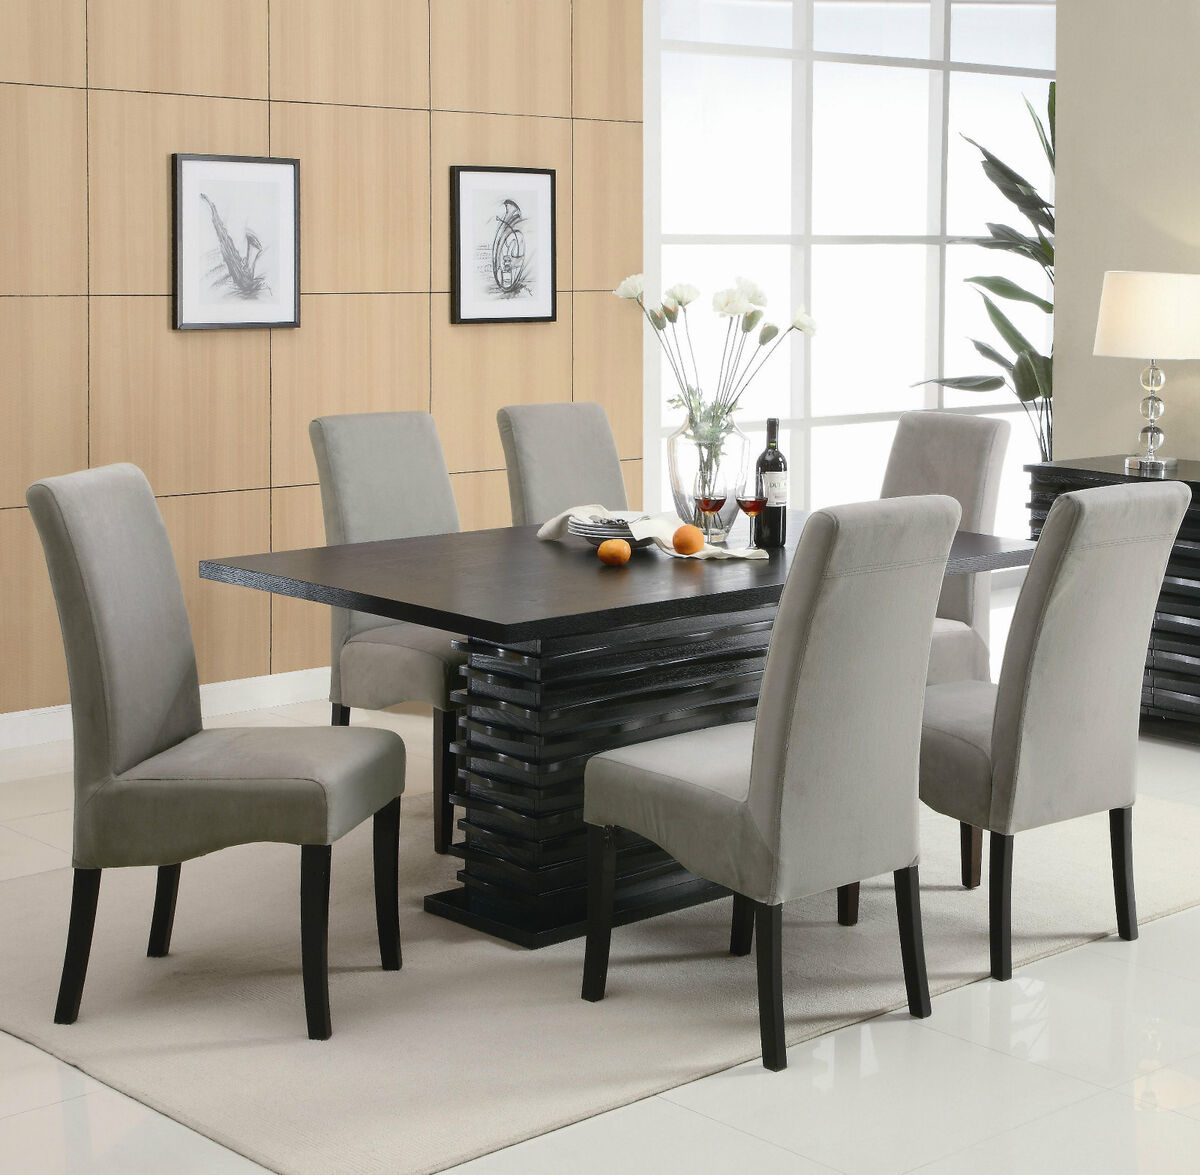 Excellent Contemporary Dining Table Sets 1200 x 1175 · 161 kB · jpeg